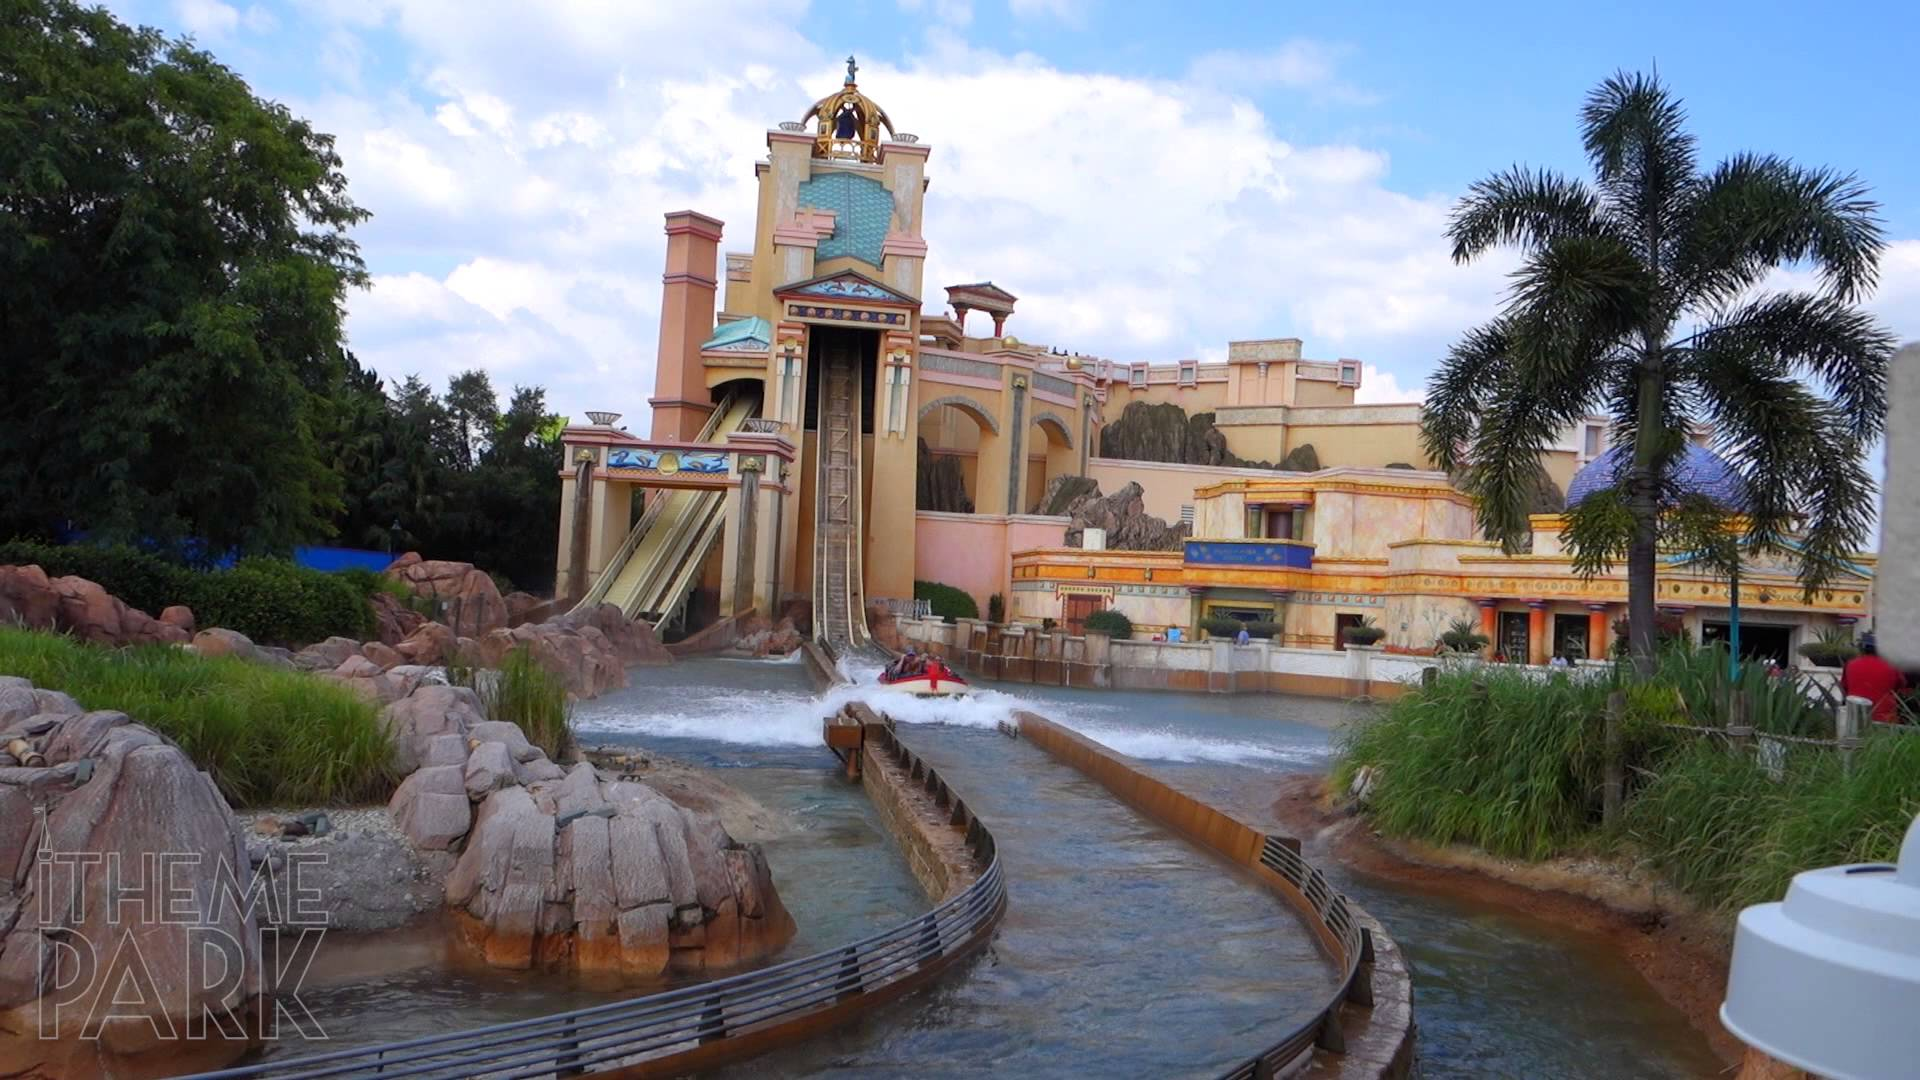 SeaWorld Orlando 2014 Tour and Overview – Florida